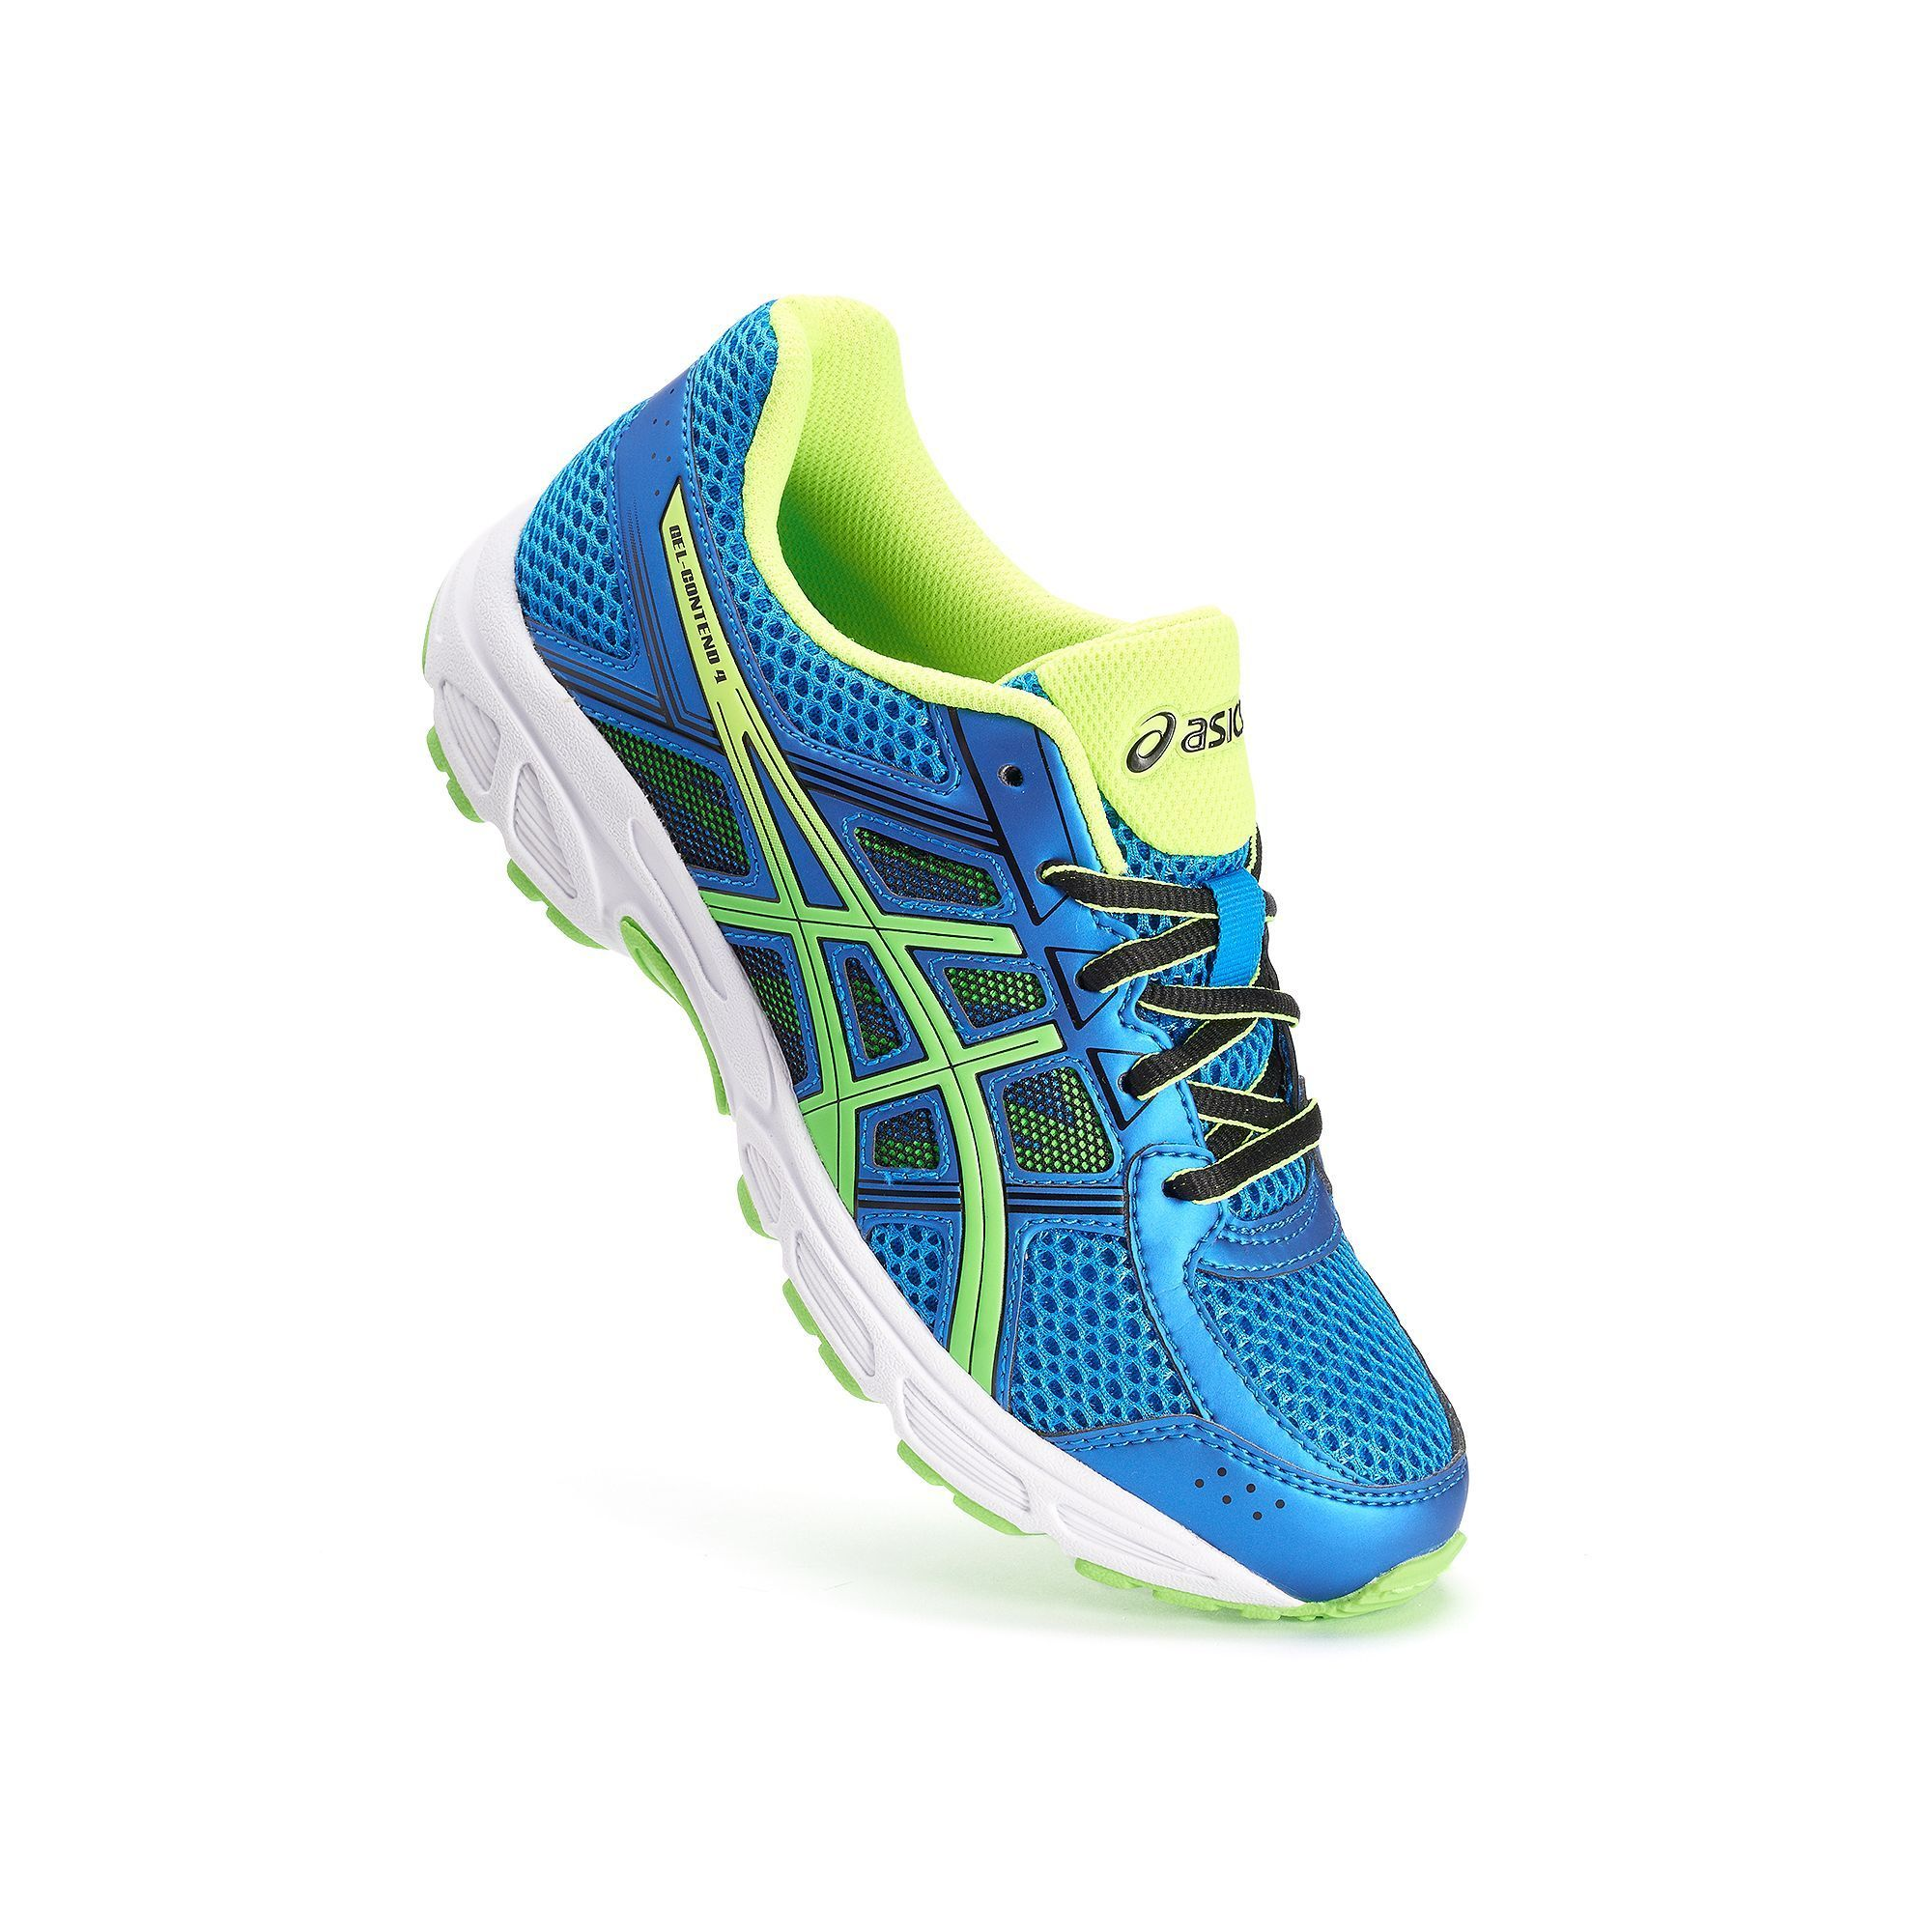 ASICS GEL-Contend 4 Grade School Boys' Running Shoes, Size: 7 Wide, Grey  Other